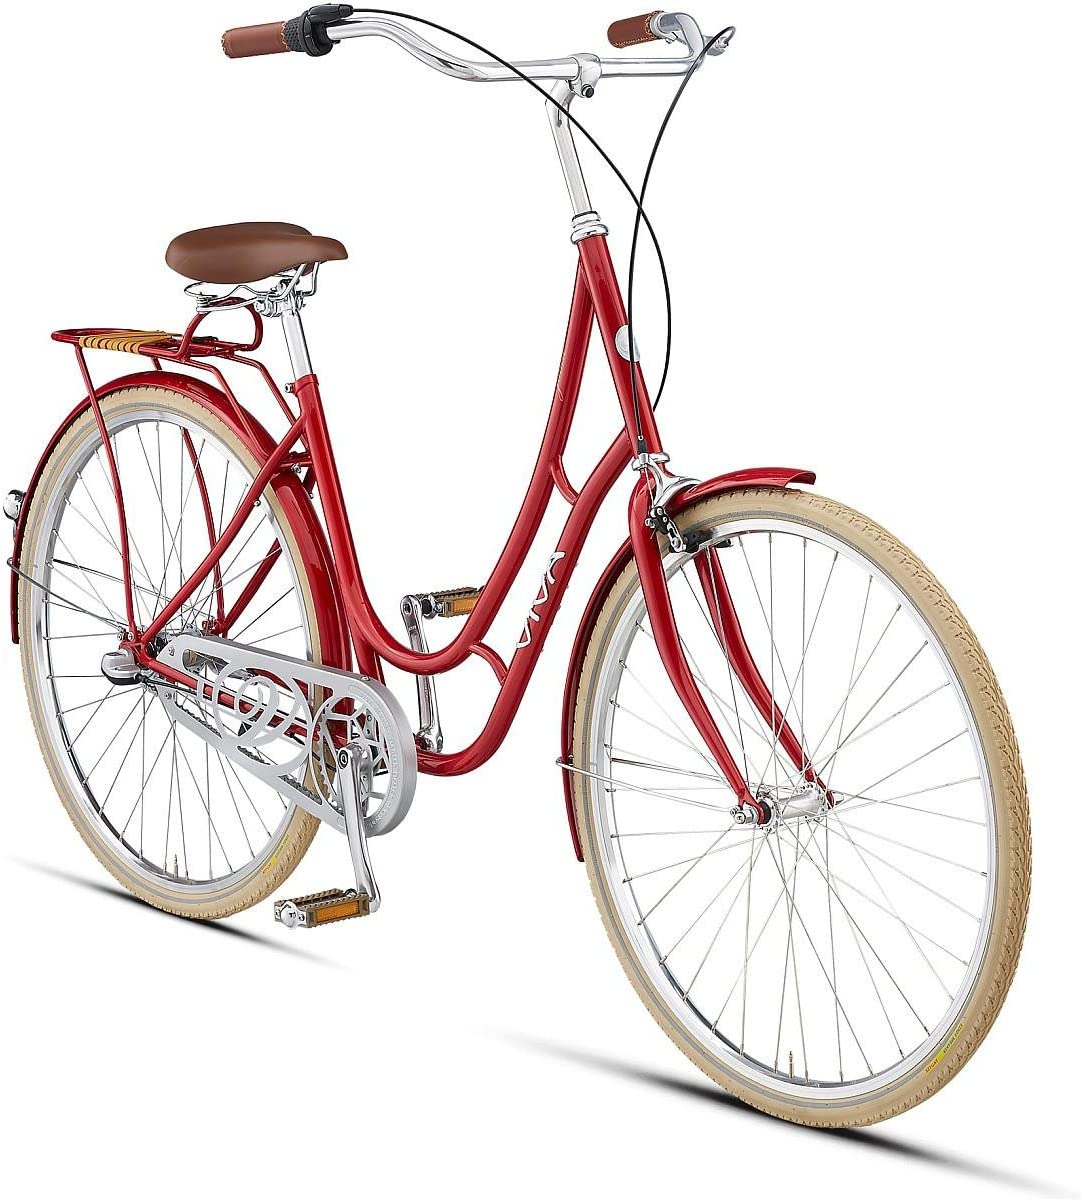 Viva Juliett 3 Metallic Red 47 cm City Cruiser 700 C Bicycle